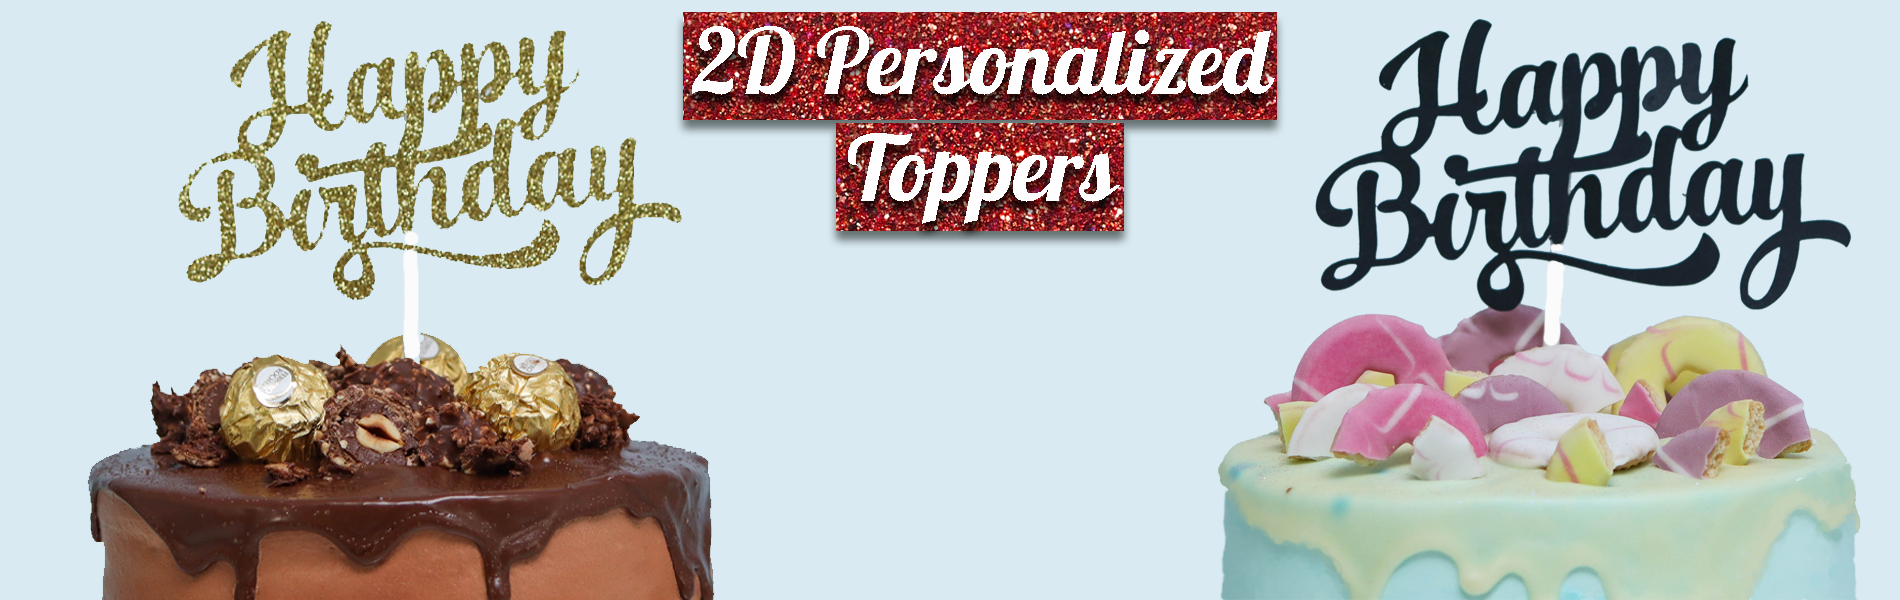 2D Personalized Toppers